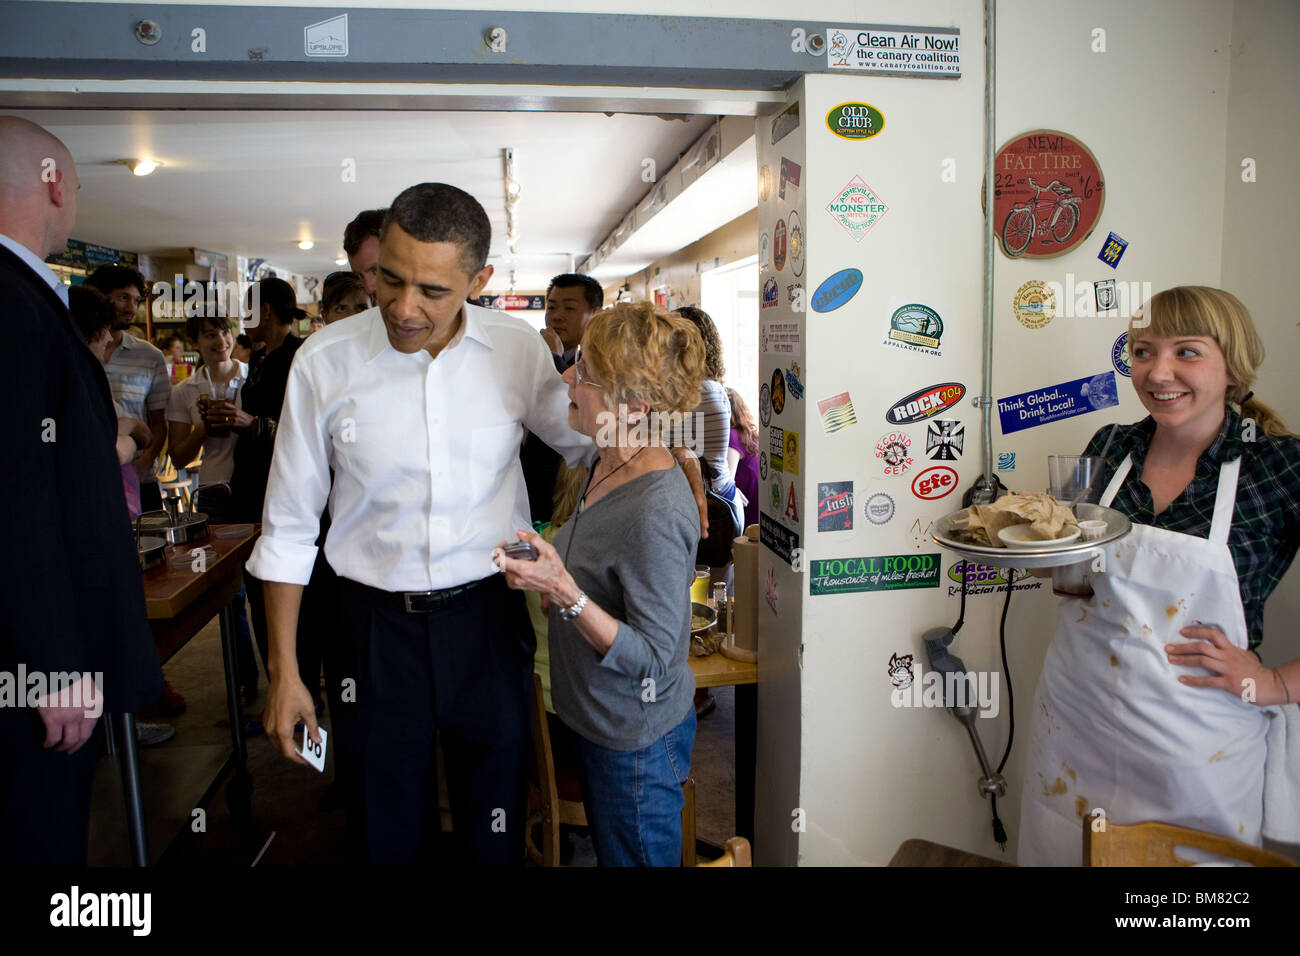 President Barack Obama and First Lady Michelle Obama talk with patrons at 12 Bones restaurant in Asheville, N.C., - Stock Image